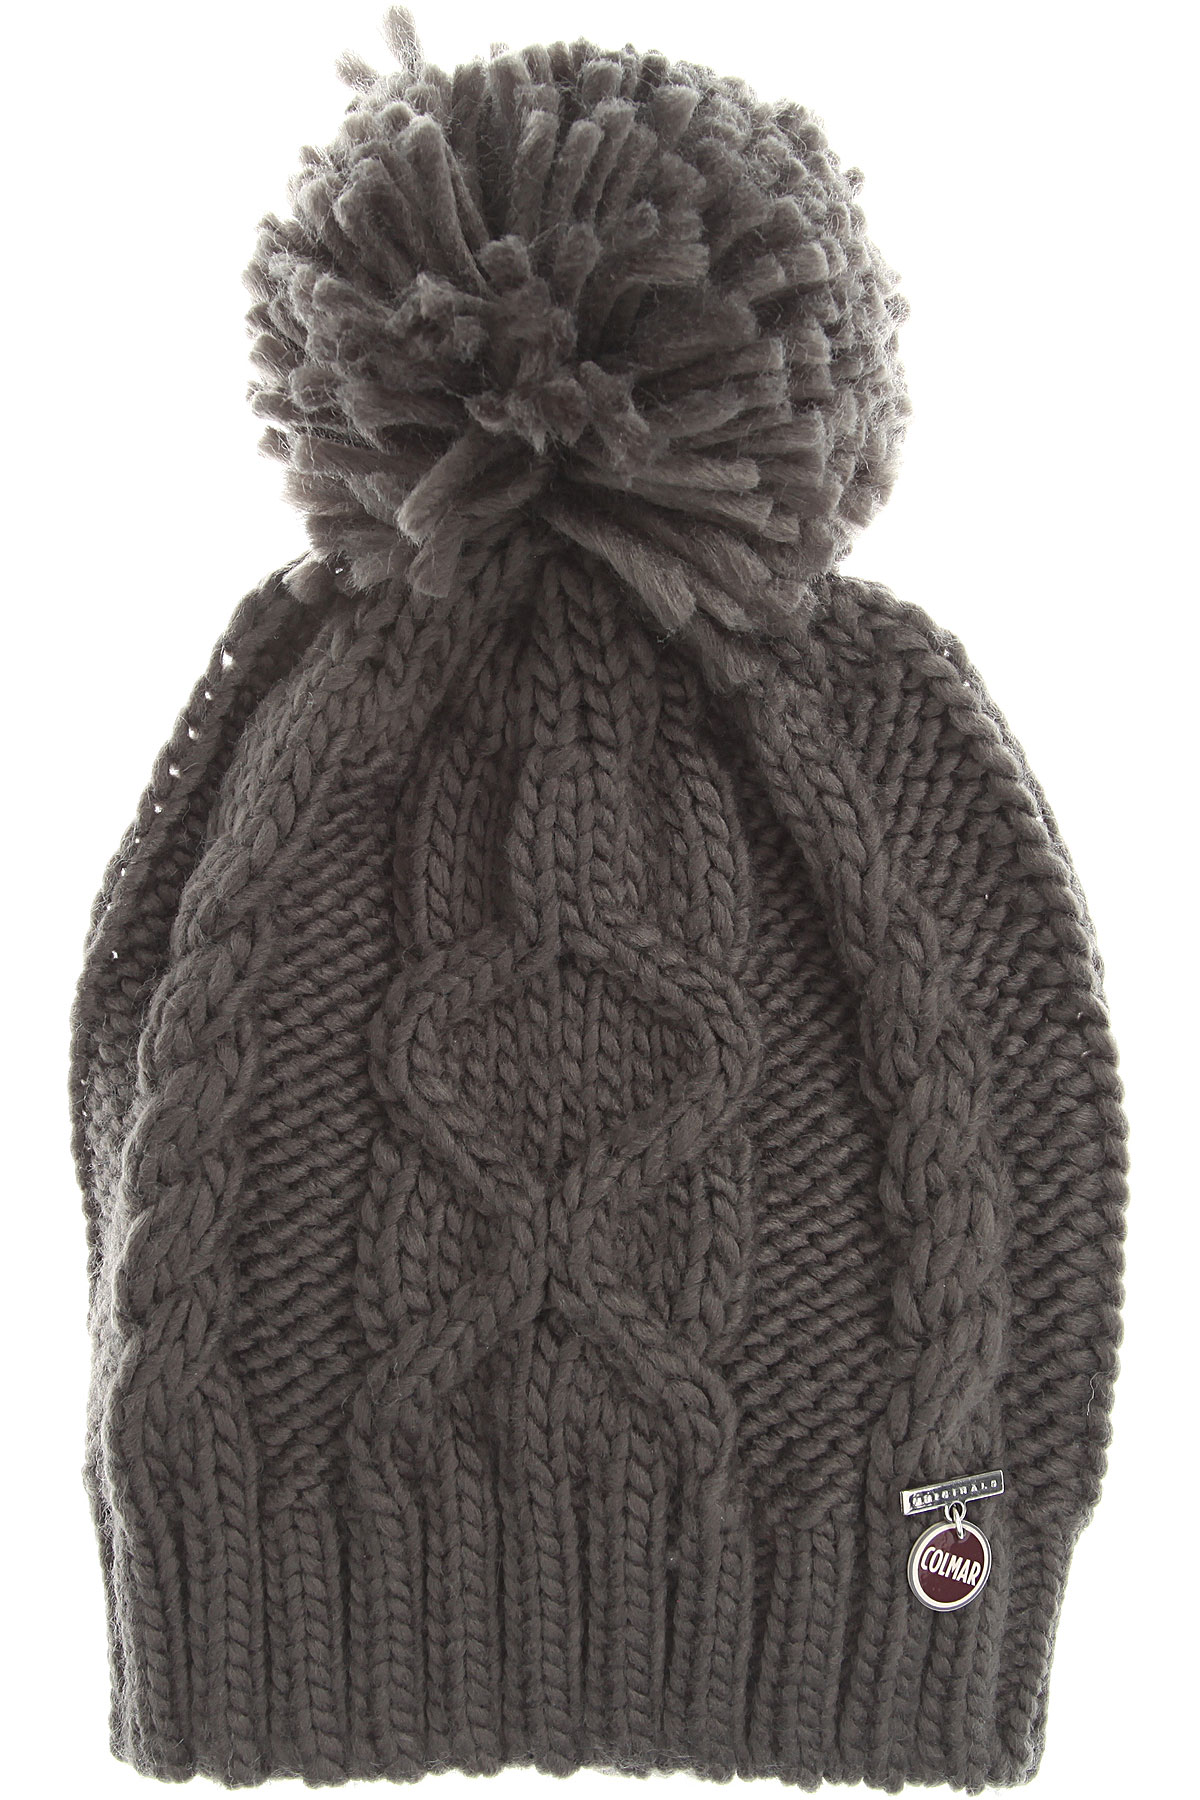 Image of Colmar Hat for Women, Graphite Grey, Acrylic, 2017